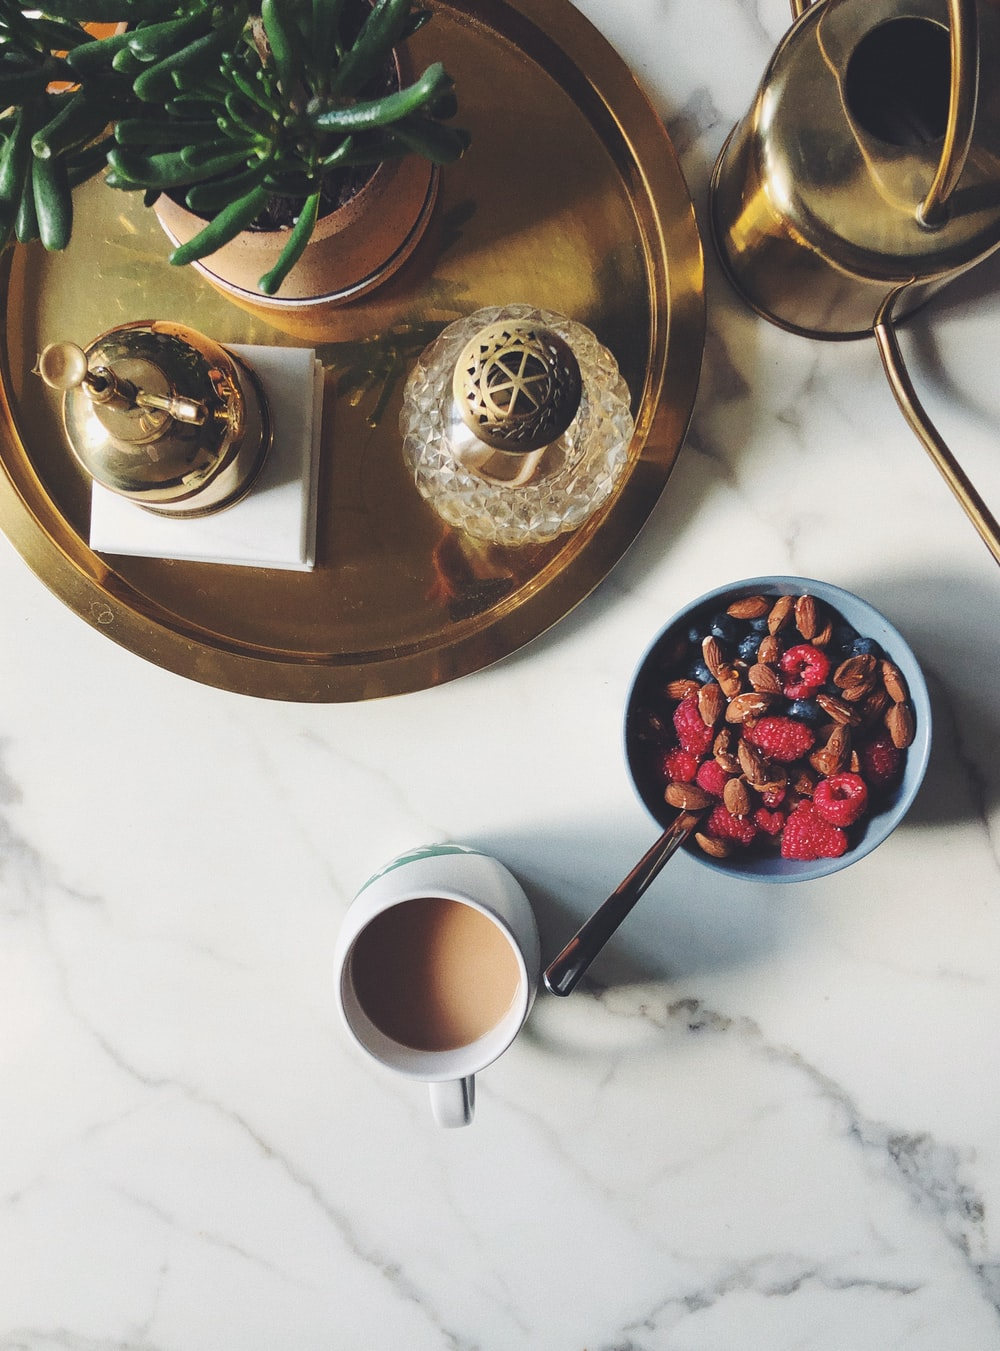 bowl of cereal beside coffee